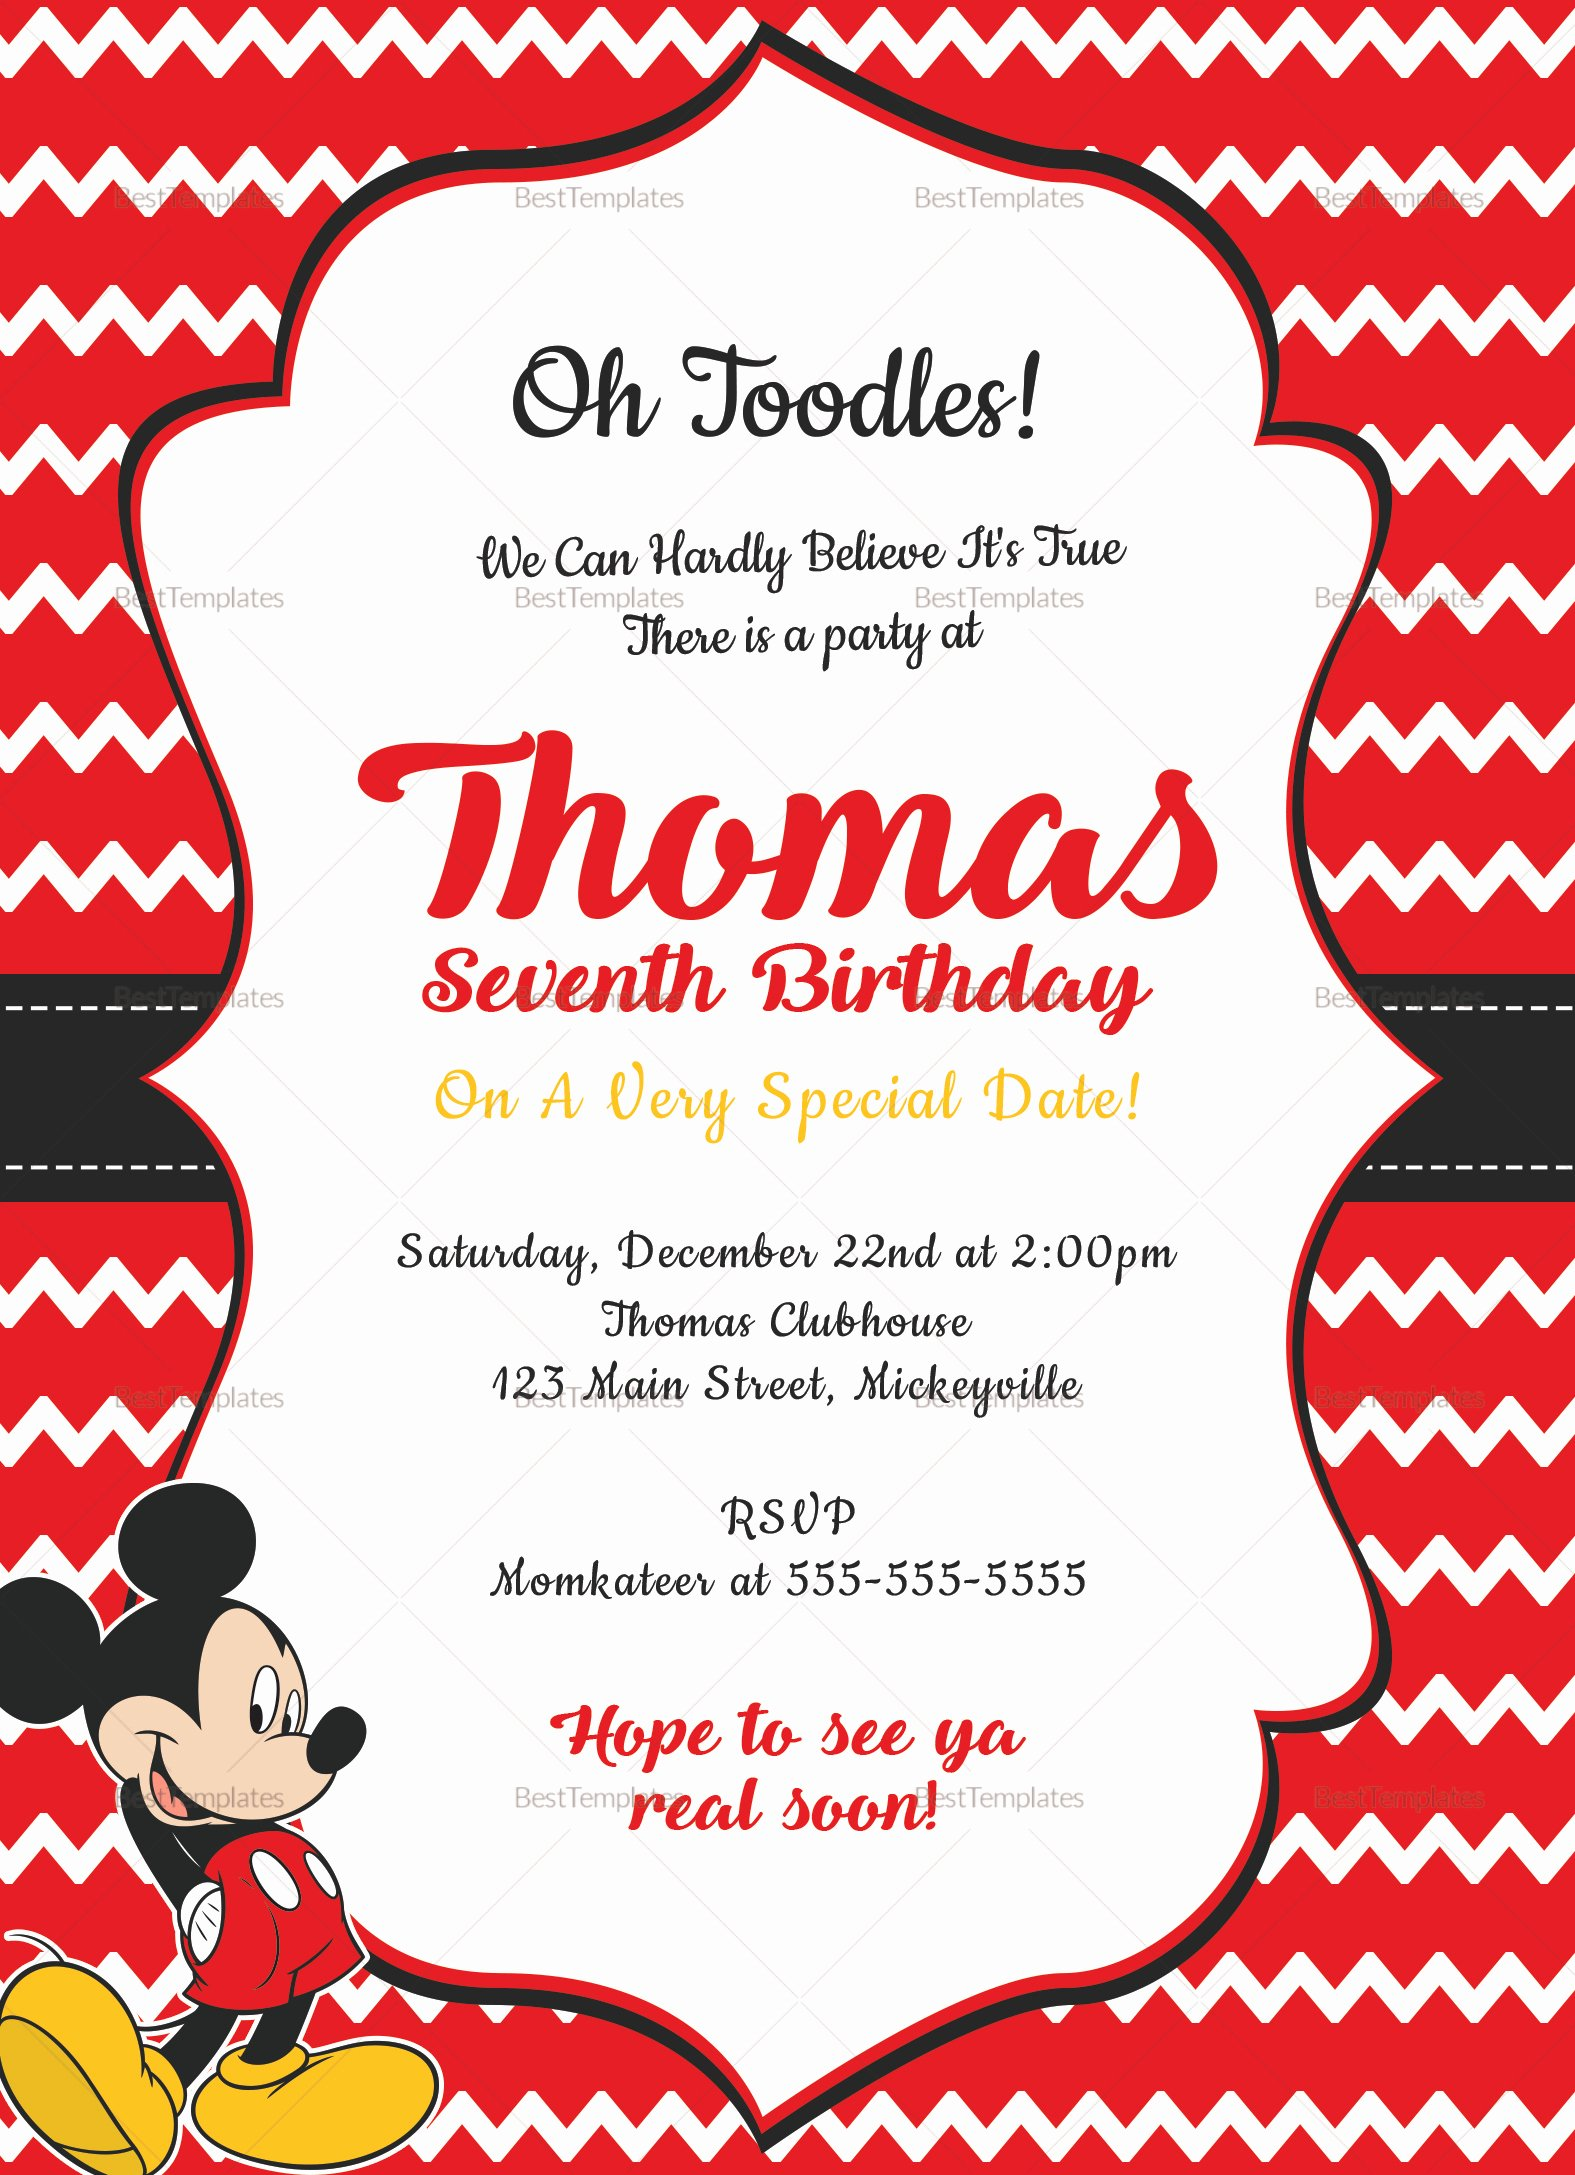 Mickey Mouse Invitation Card Fresh Editable Mickey Mouse Birthday Invitation Card Design